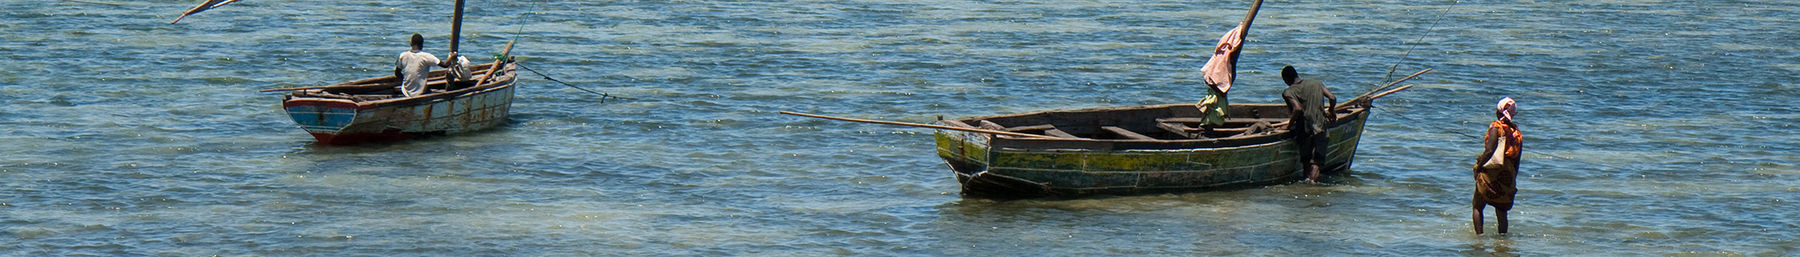 Island of Mozambique banner Small boats.jpg